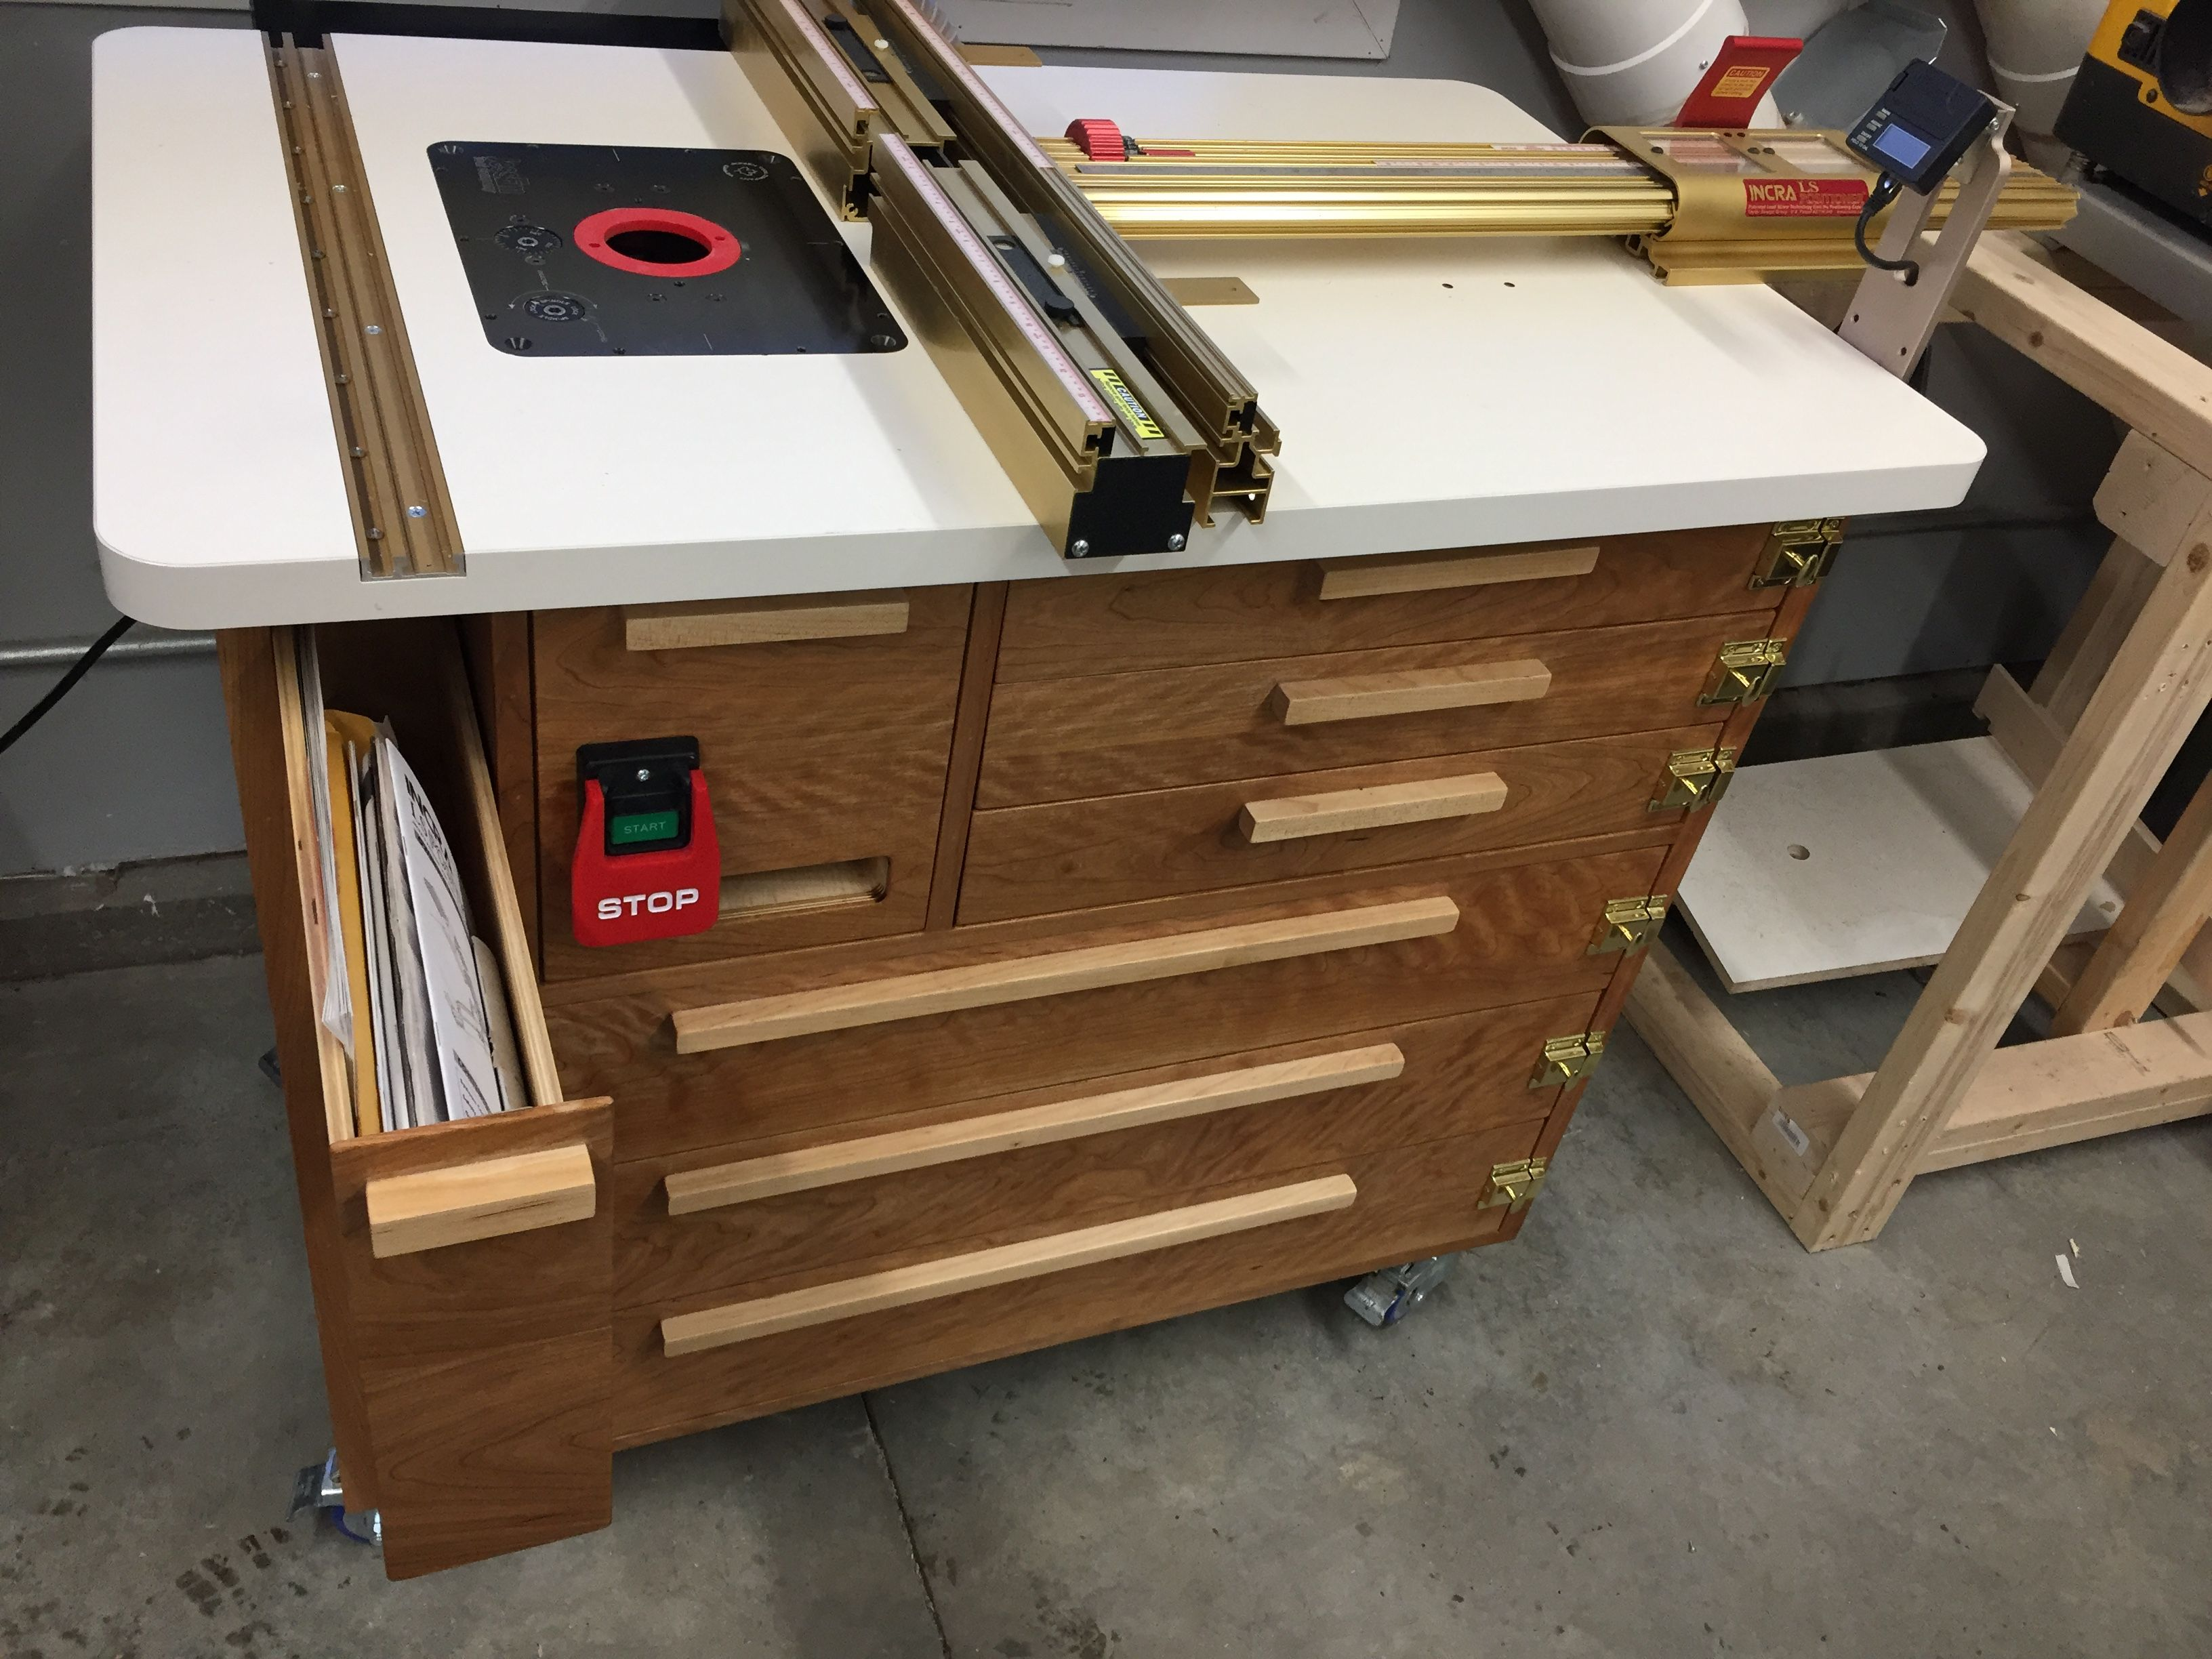 Homemade router table top  Pin by OHM Rocking Chairs on Routers u Router Tables  Pinterest